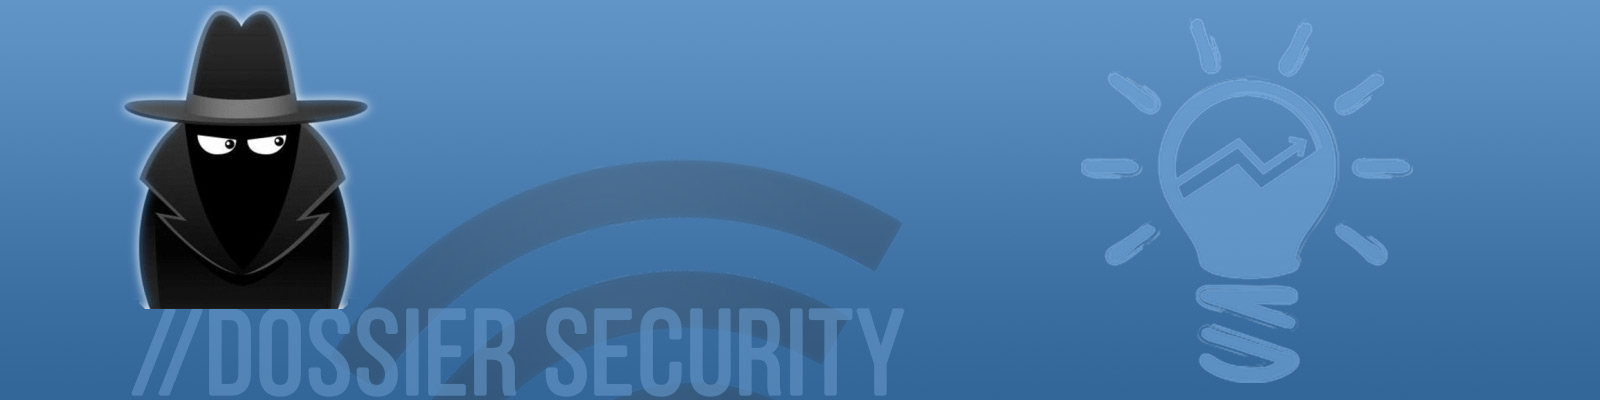 Dossier Security 5 Tips